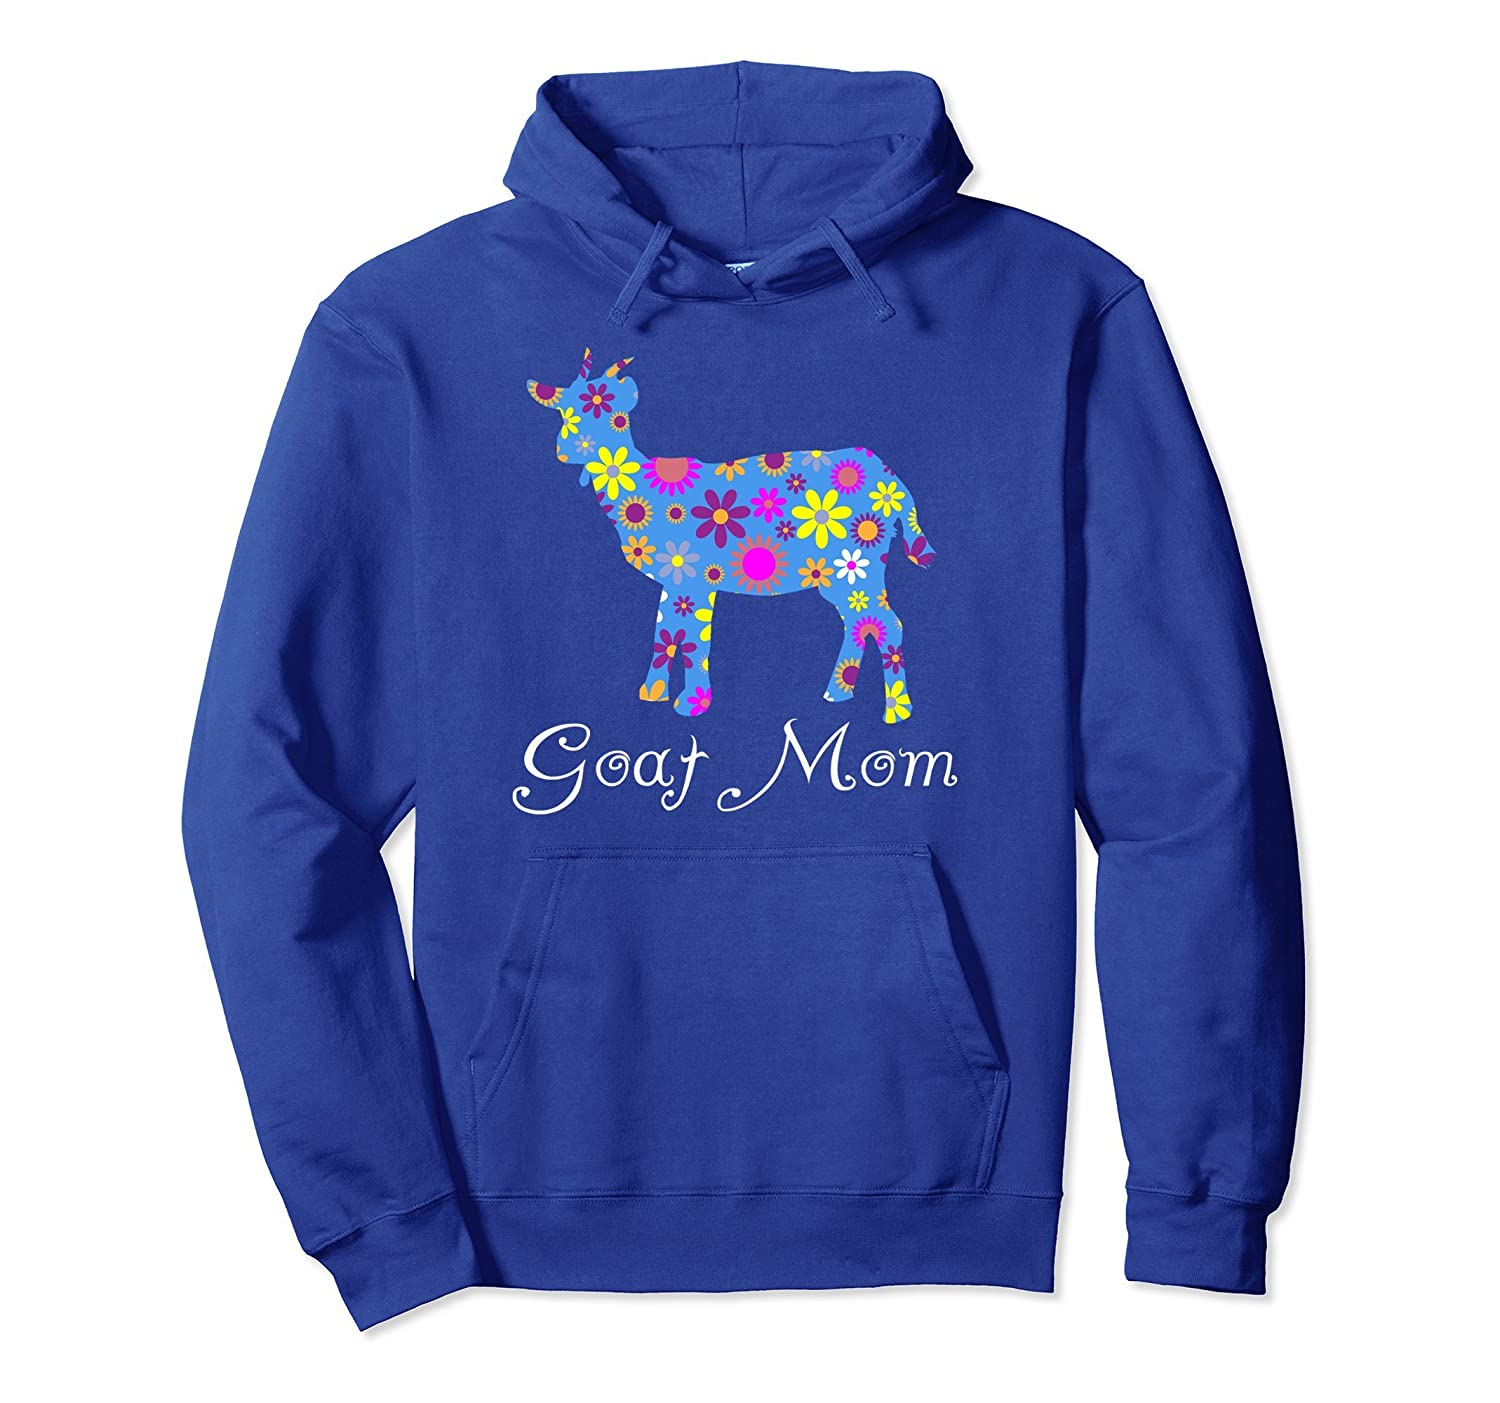 Goat Mom Hoodie - Cute Floral Apparel That Will Turn Heads-alottee gift